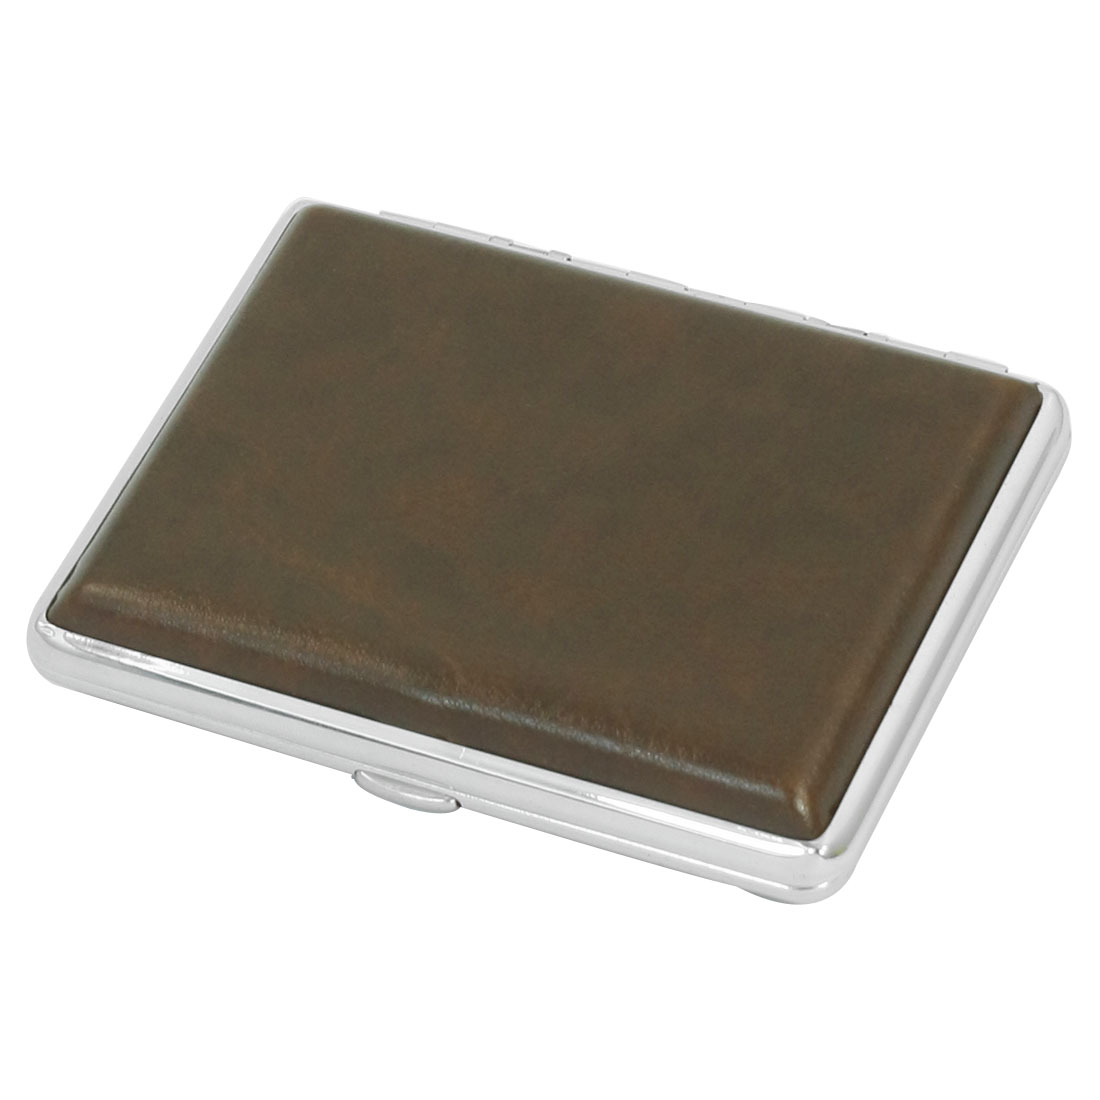 Brown Faux Leather Coated Two Sides Hinge Closure Metallic Case Box Holder Container for 16pcs Cigarette